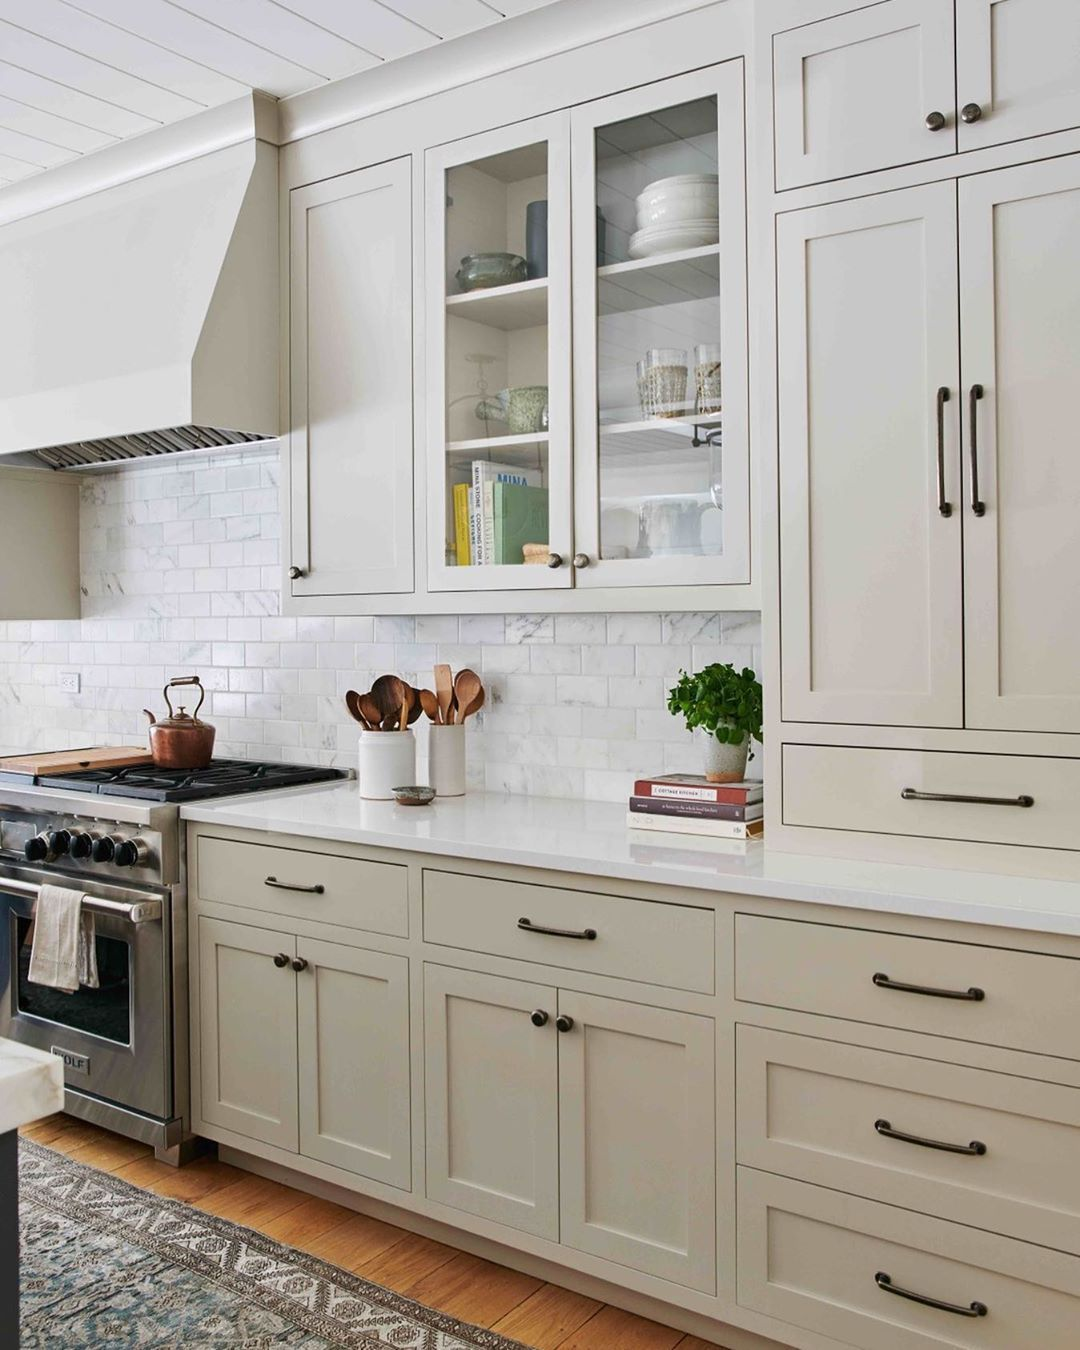 All Sorts Of On Instagram Currently Crushing Greige Kitchen Cabinets It S One Of Our F In 2020 Kitchen Cabinet Design Greige Kitchen Cabinets Kitchen Cabinet Colors